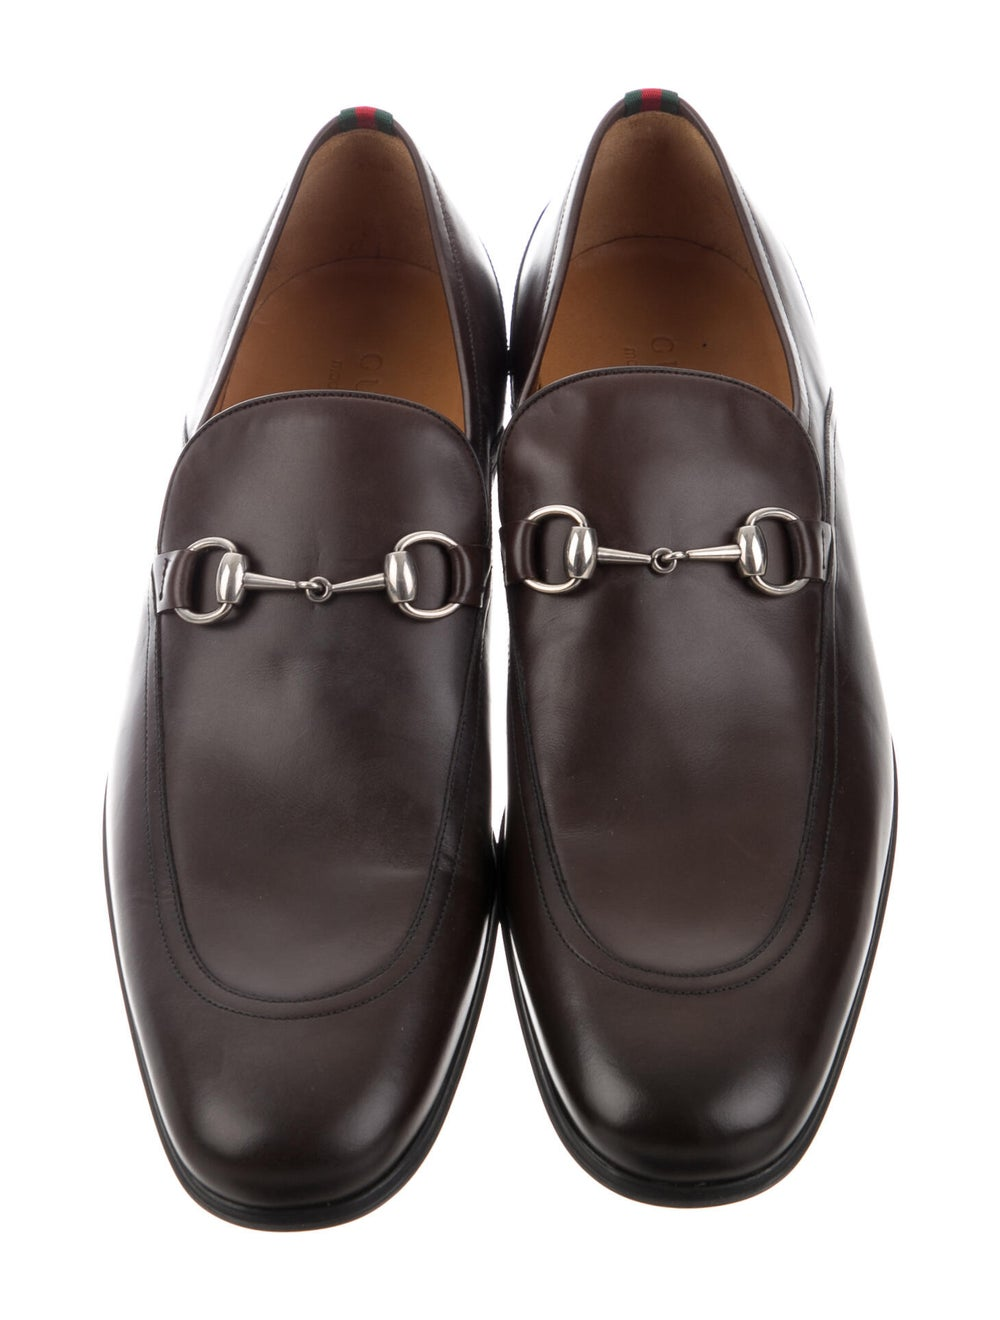 Gucci Horsebit Accent Leather Dress Loafers Brown - image 3